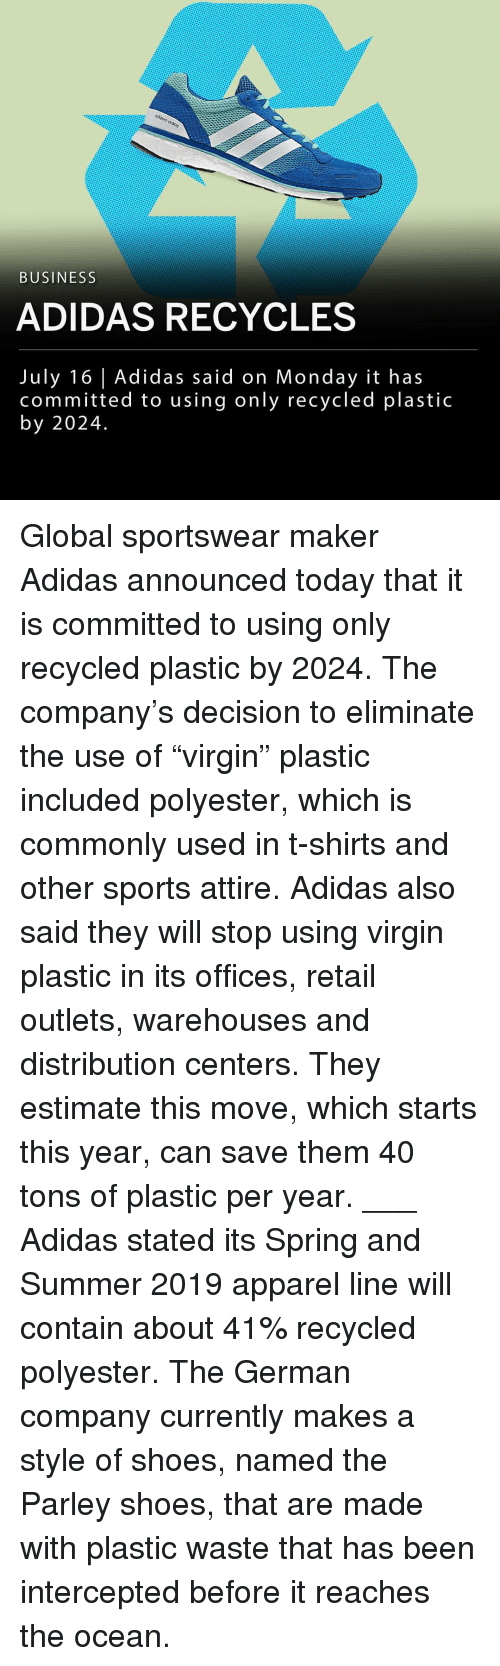 "Adidas, Memes, and Shoes: BUSINESS  ADIDAS RECYCLES  July 16 Adidas said on Monday it has  committed to using only recycled plastic  by 2024. Global sportswear maker Adidas announced today that it is committed to using only recycled plastic by 2024. The company's decision to eliminate the use of ""virgin"" plastic included polyester, which is commonly used in t-shirts and other sports attire. Adidas also said they will stop using virgin plastic in its offices, retail outlets, warehouses and distribution centers. They estimate this move, which starts this year, can save them 40 tons of plastic per year. ___ Adidas stated its Spring and Summer 2019 apparel line will contain about 41% recycled polyester. The German company currently makes a style of shoes, named the Parley shoes, that are made with plastic waste that has been intercepted before it reaches the ocean."